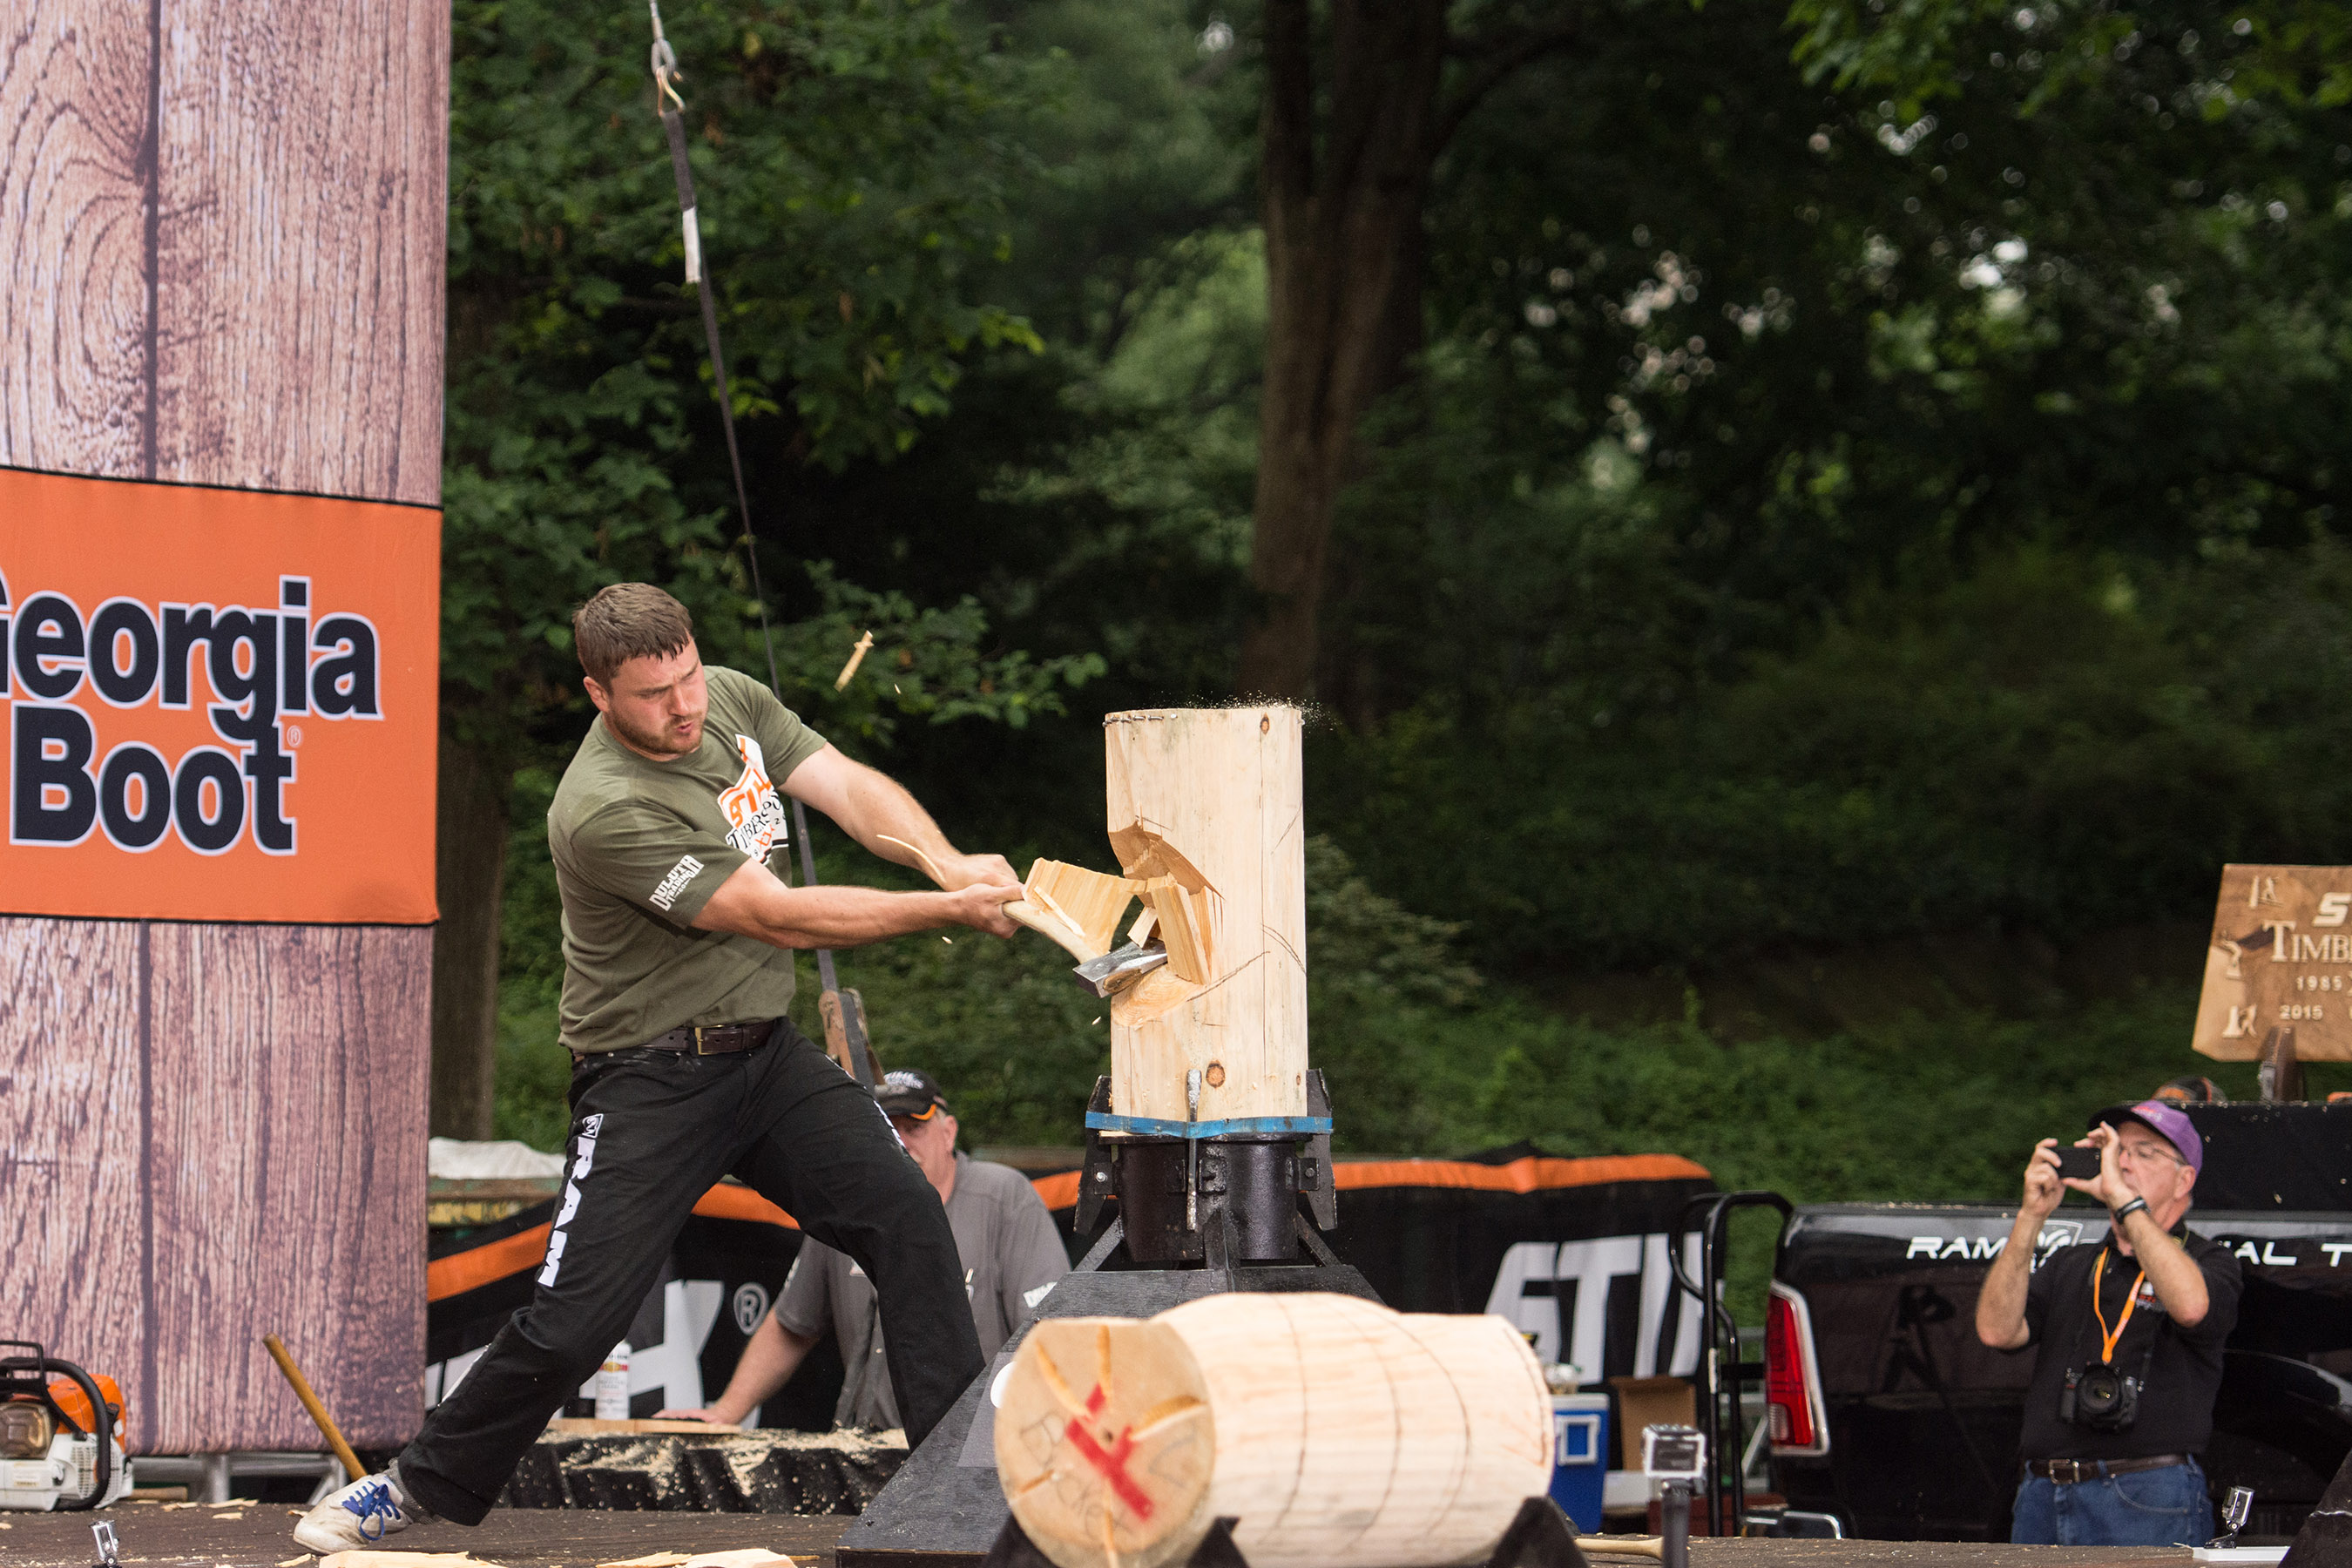 Matt Cogar has won the last three U.S. titles, and is looking to make it four this year in Chicago. If he wins this year, he will be the first U.S. competitor to win four straight titles.